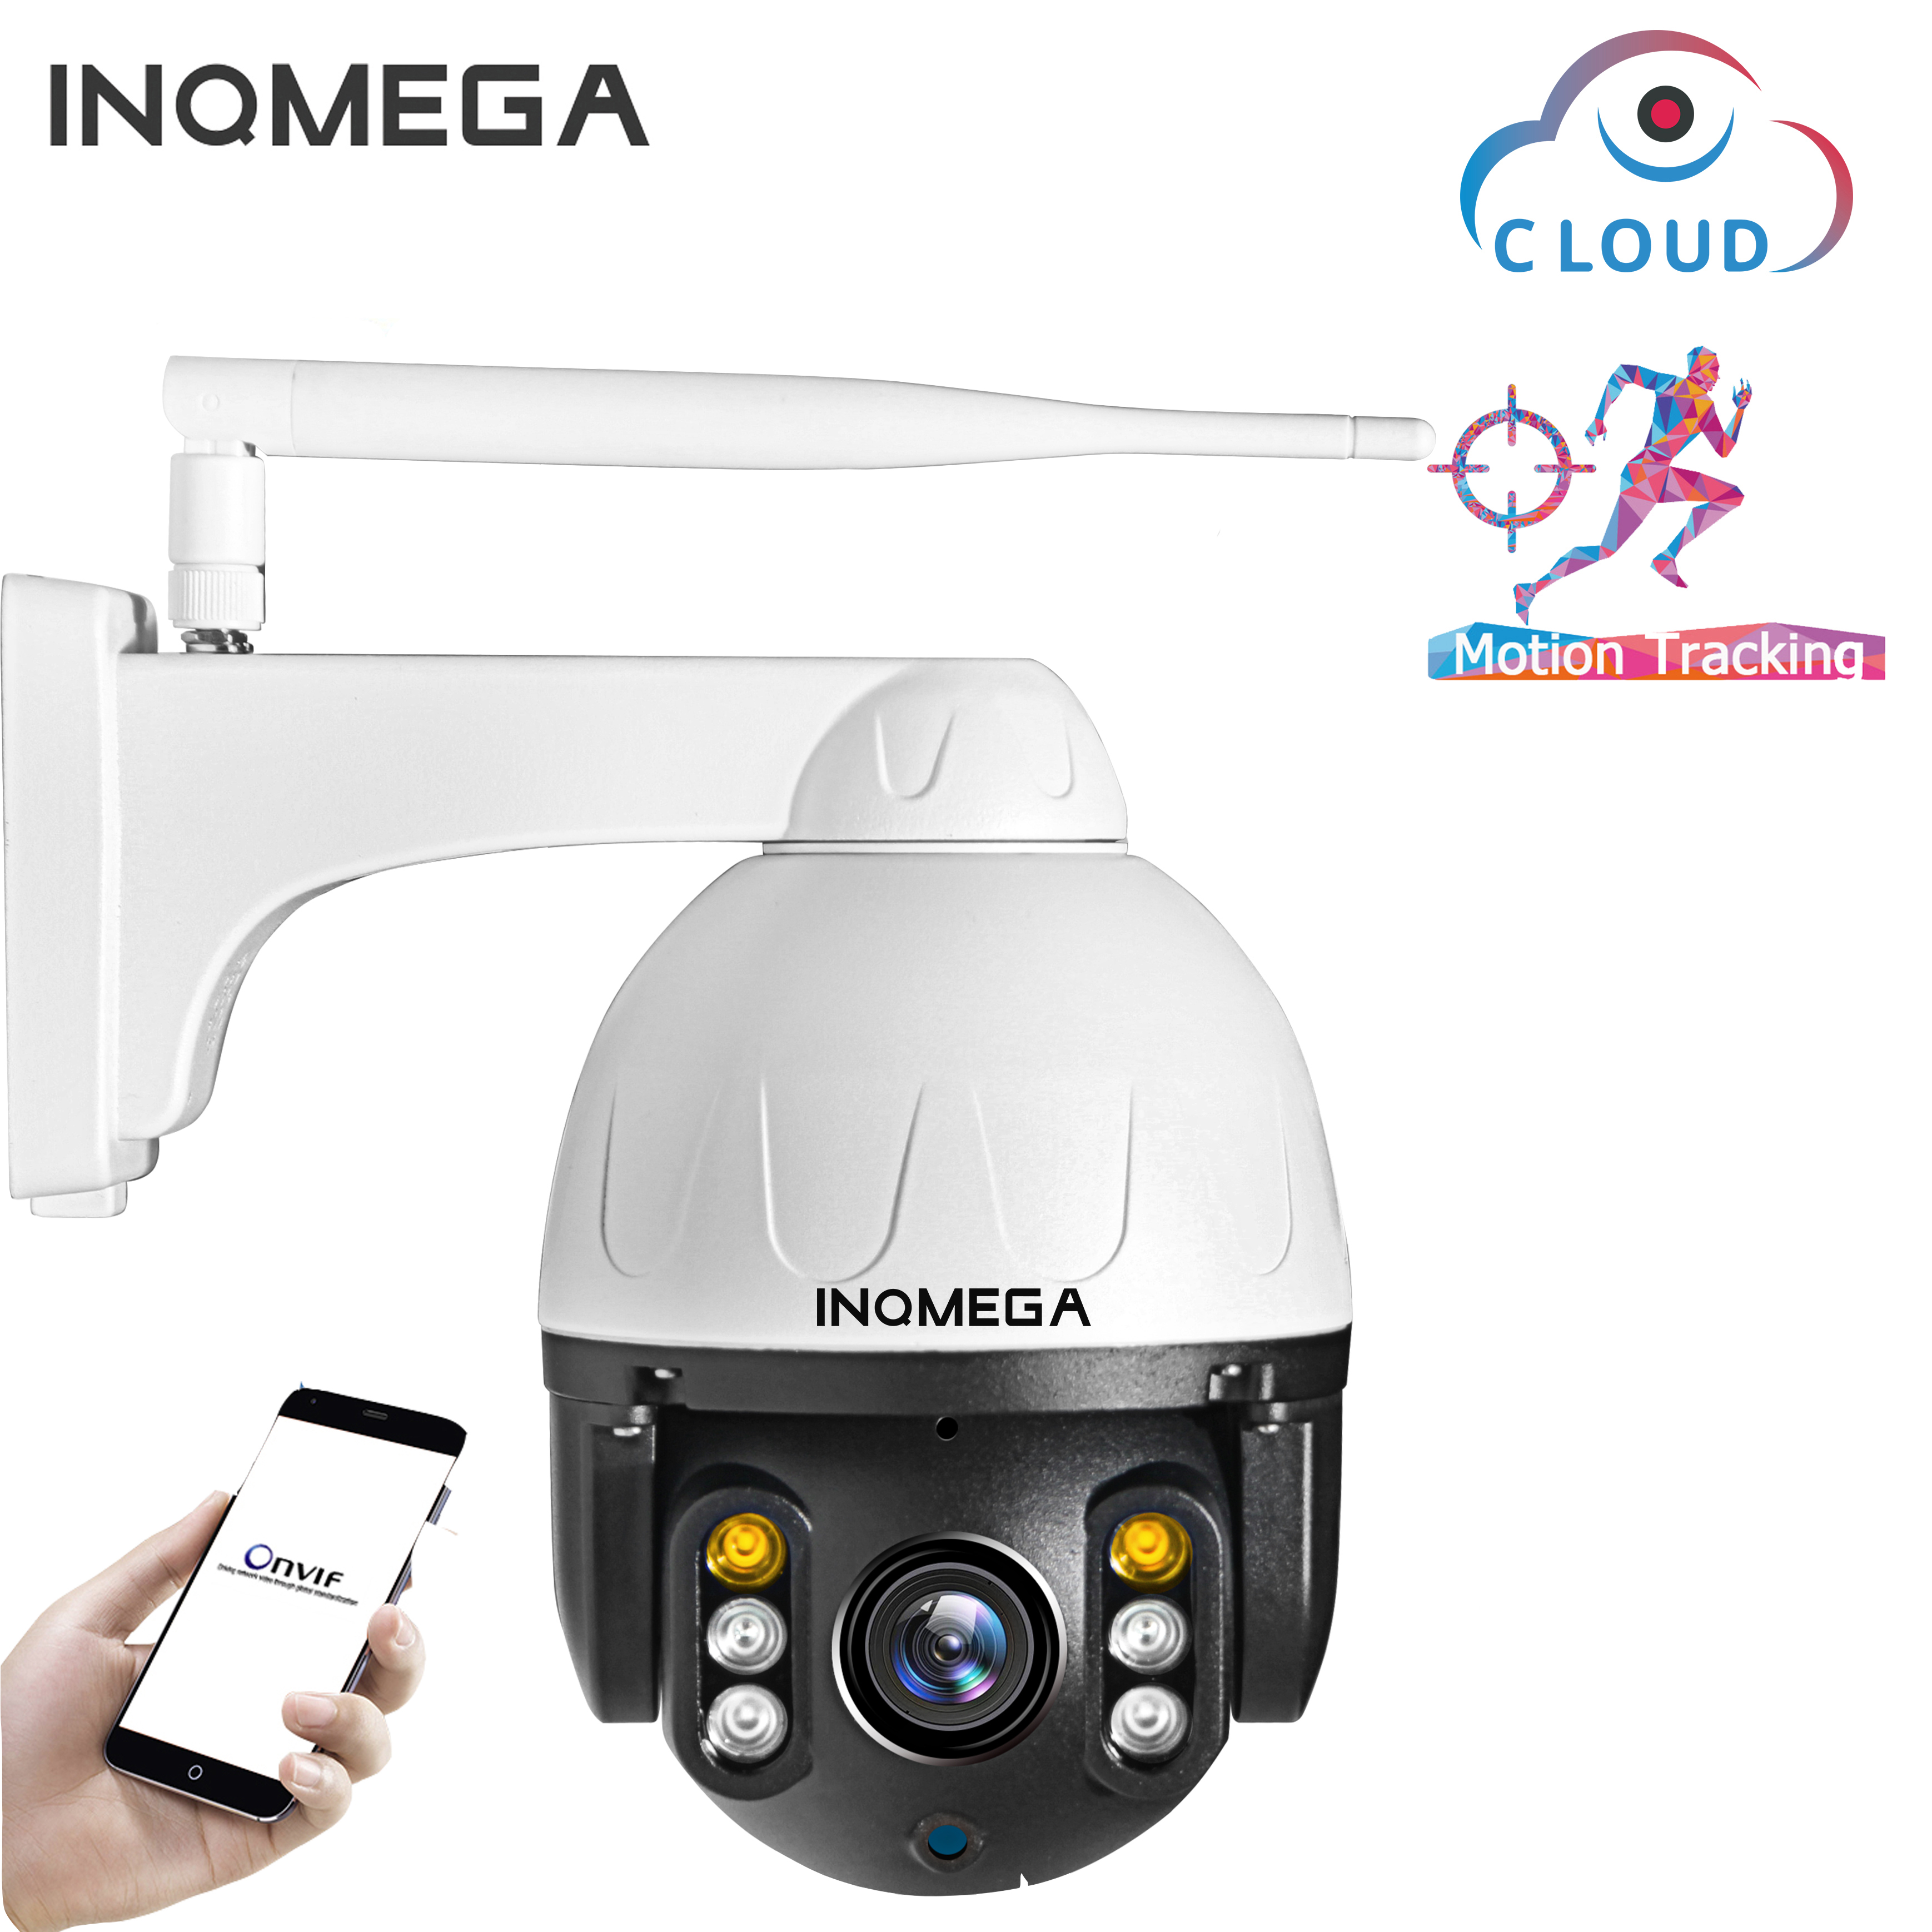 INQMEGA Cloud 1080P Outdoor PTZ IP Camera WIFI Speed Dome Auto Tracking Camera 4X Digital Zoom